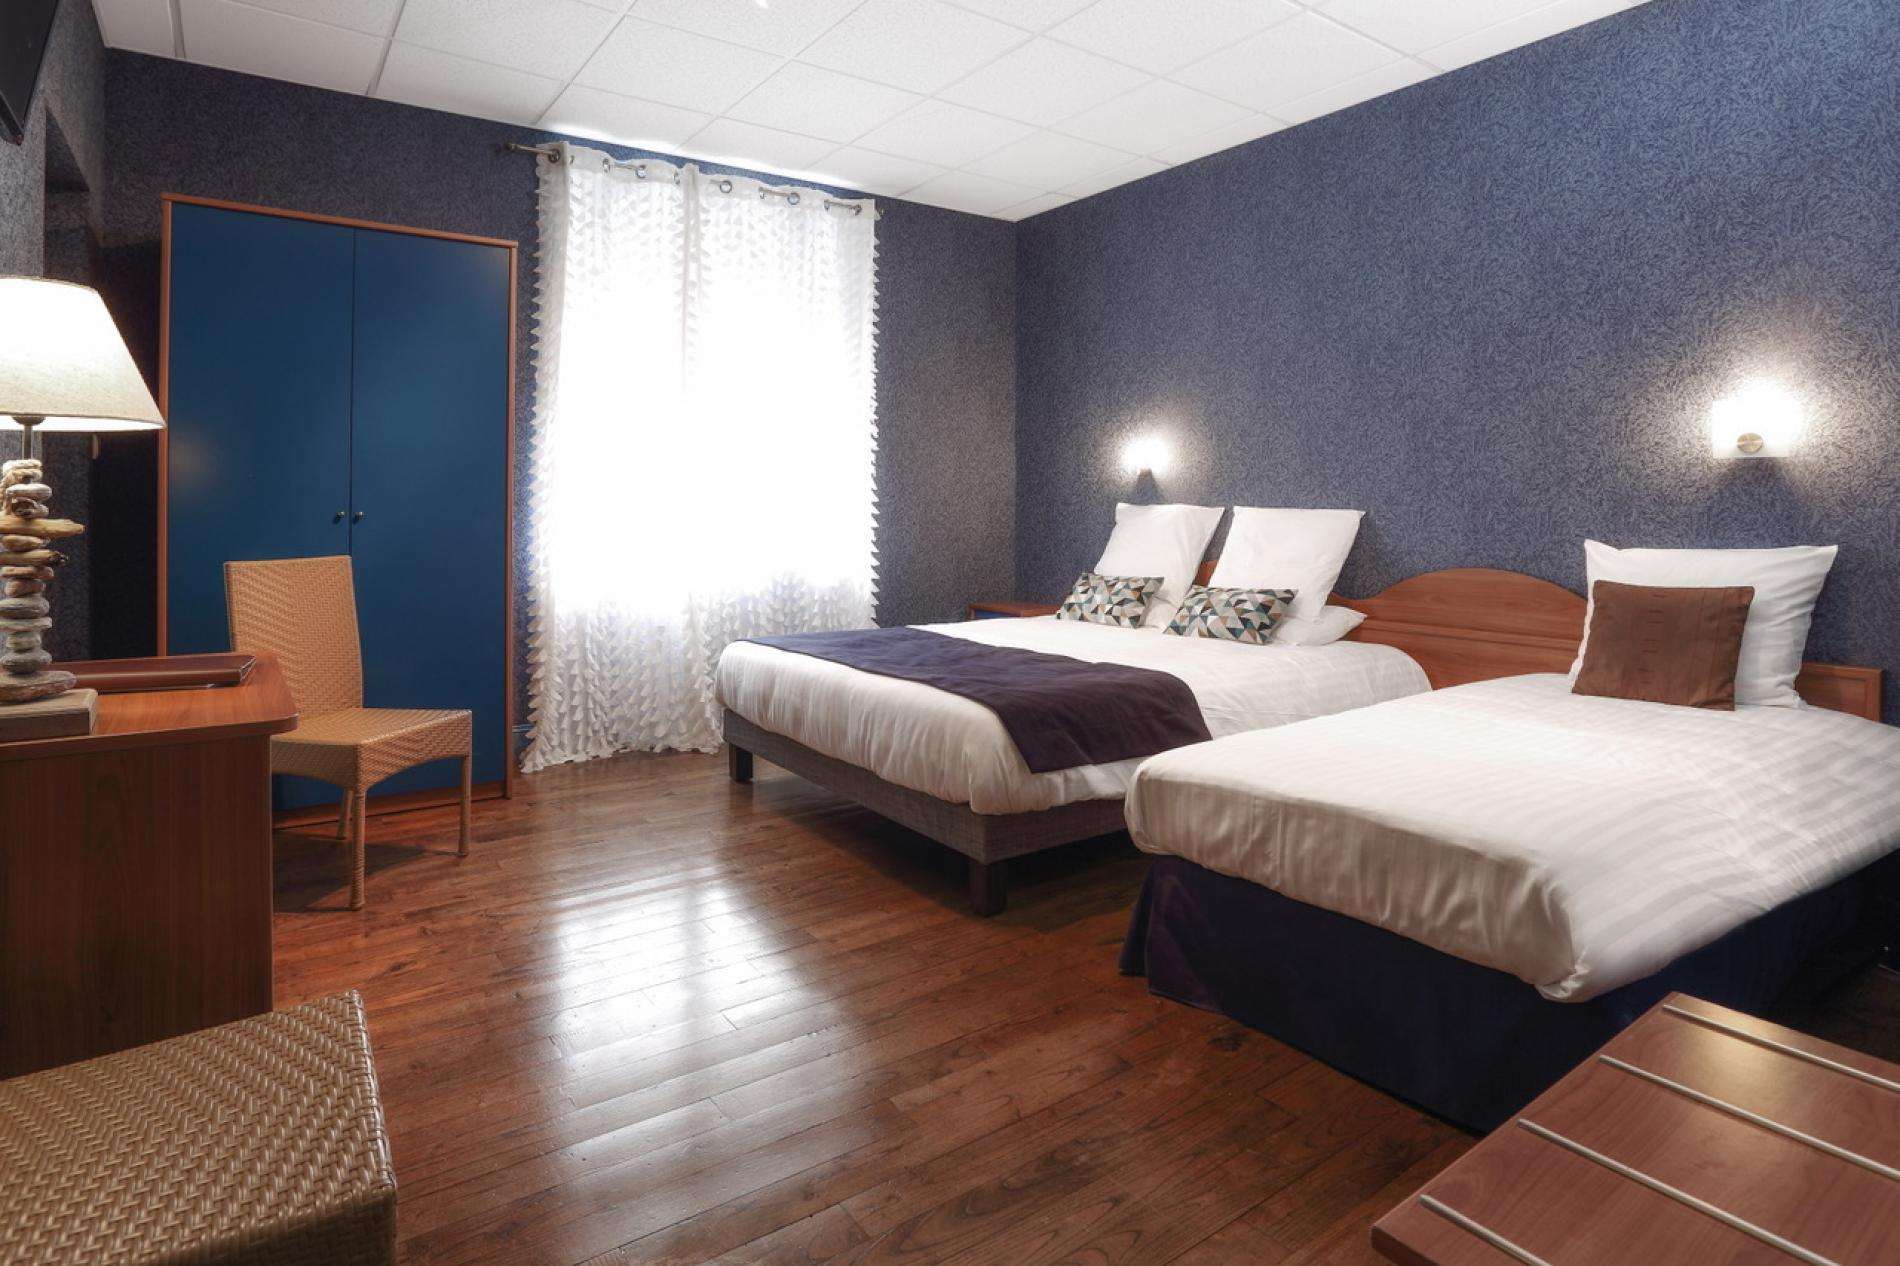 Superior category room with 2 beds for 2-3 people